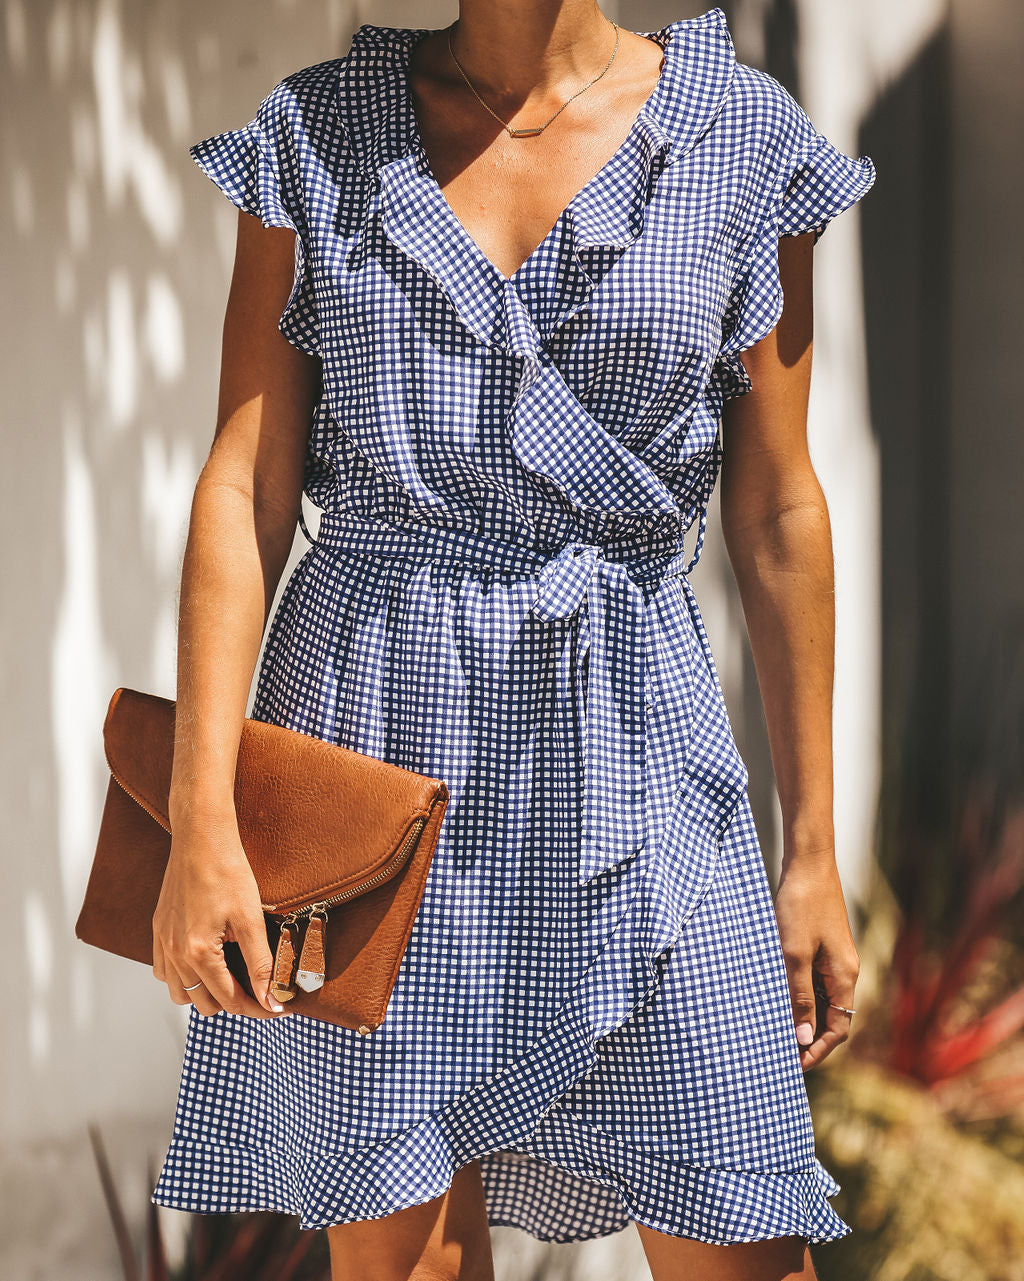 dc9699c4a Detail Product. FILTER ← Home - DRESSES - Tea For Two Gingham Ruffle Dress